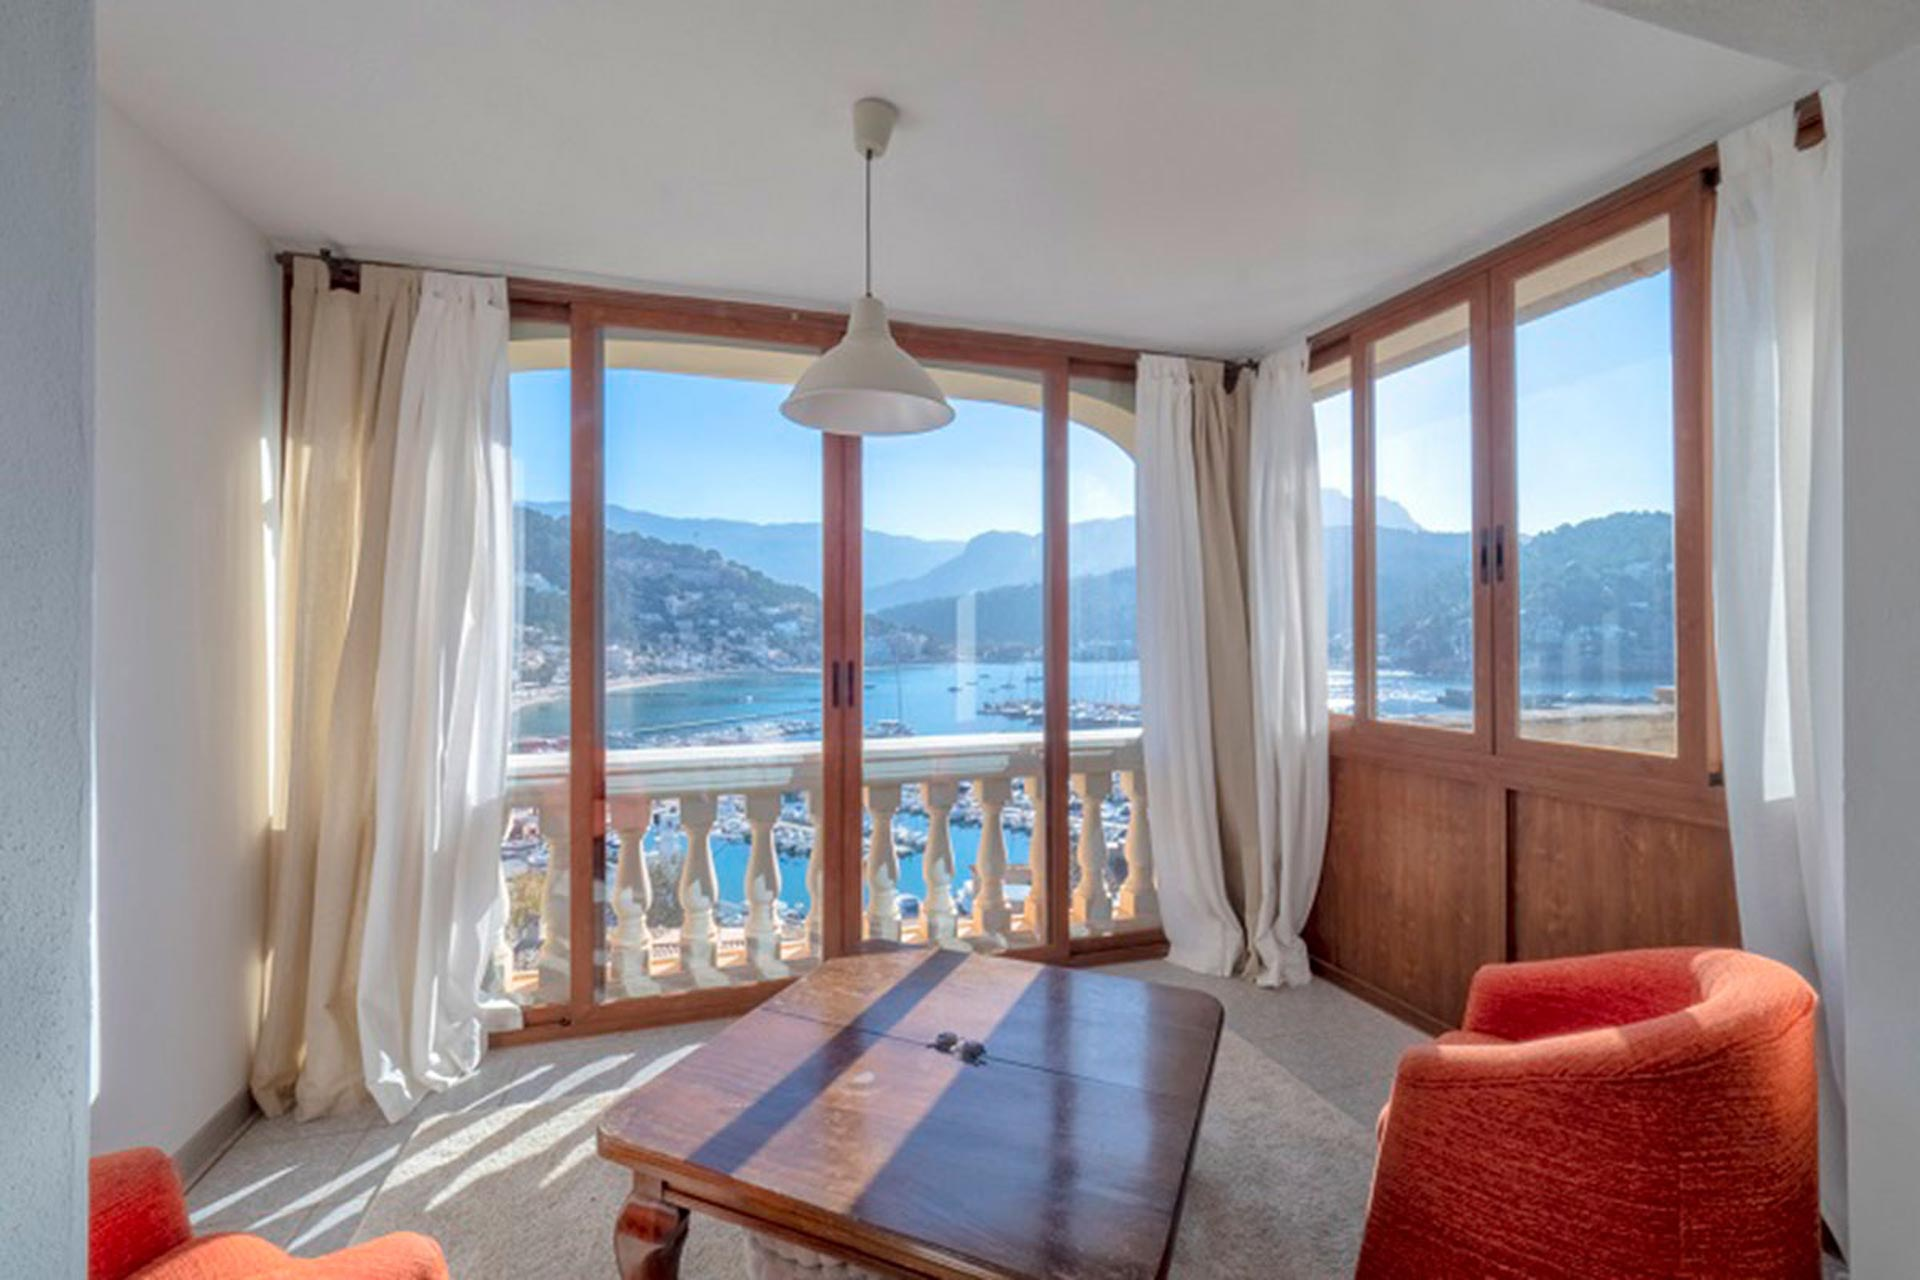 Sitting room with views over the harbour of Port de Soller and the mountains